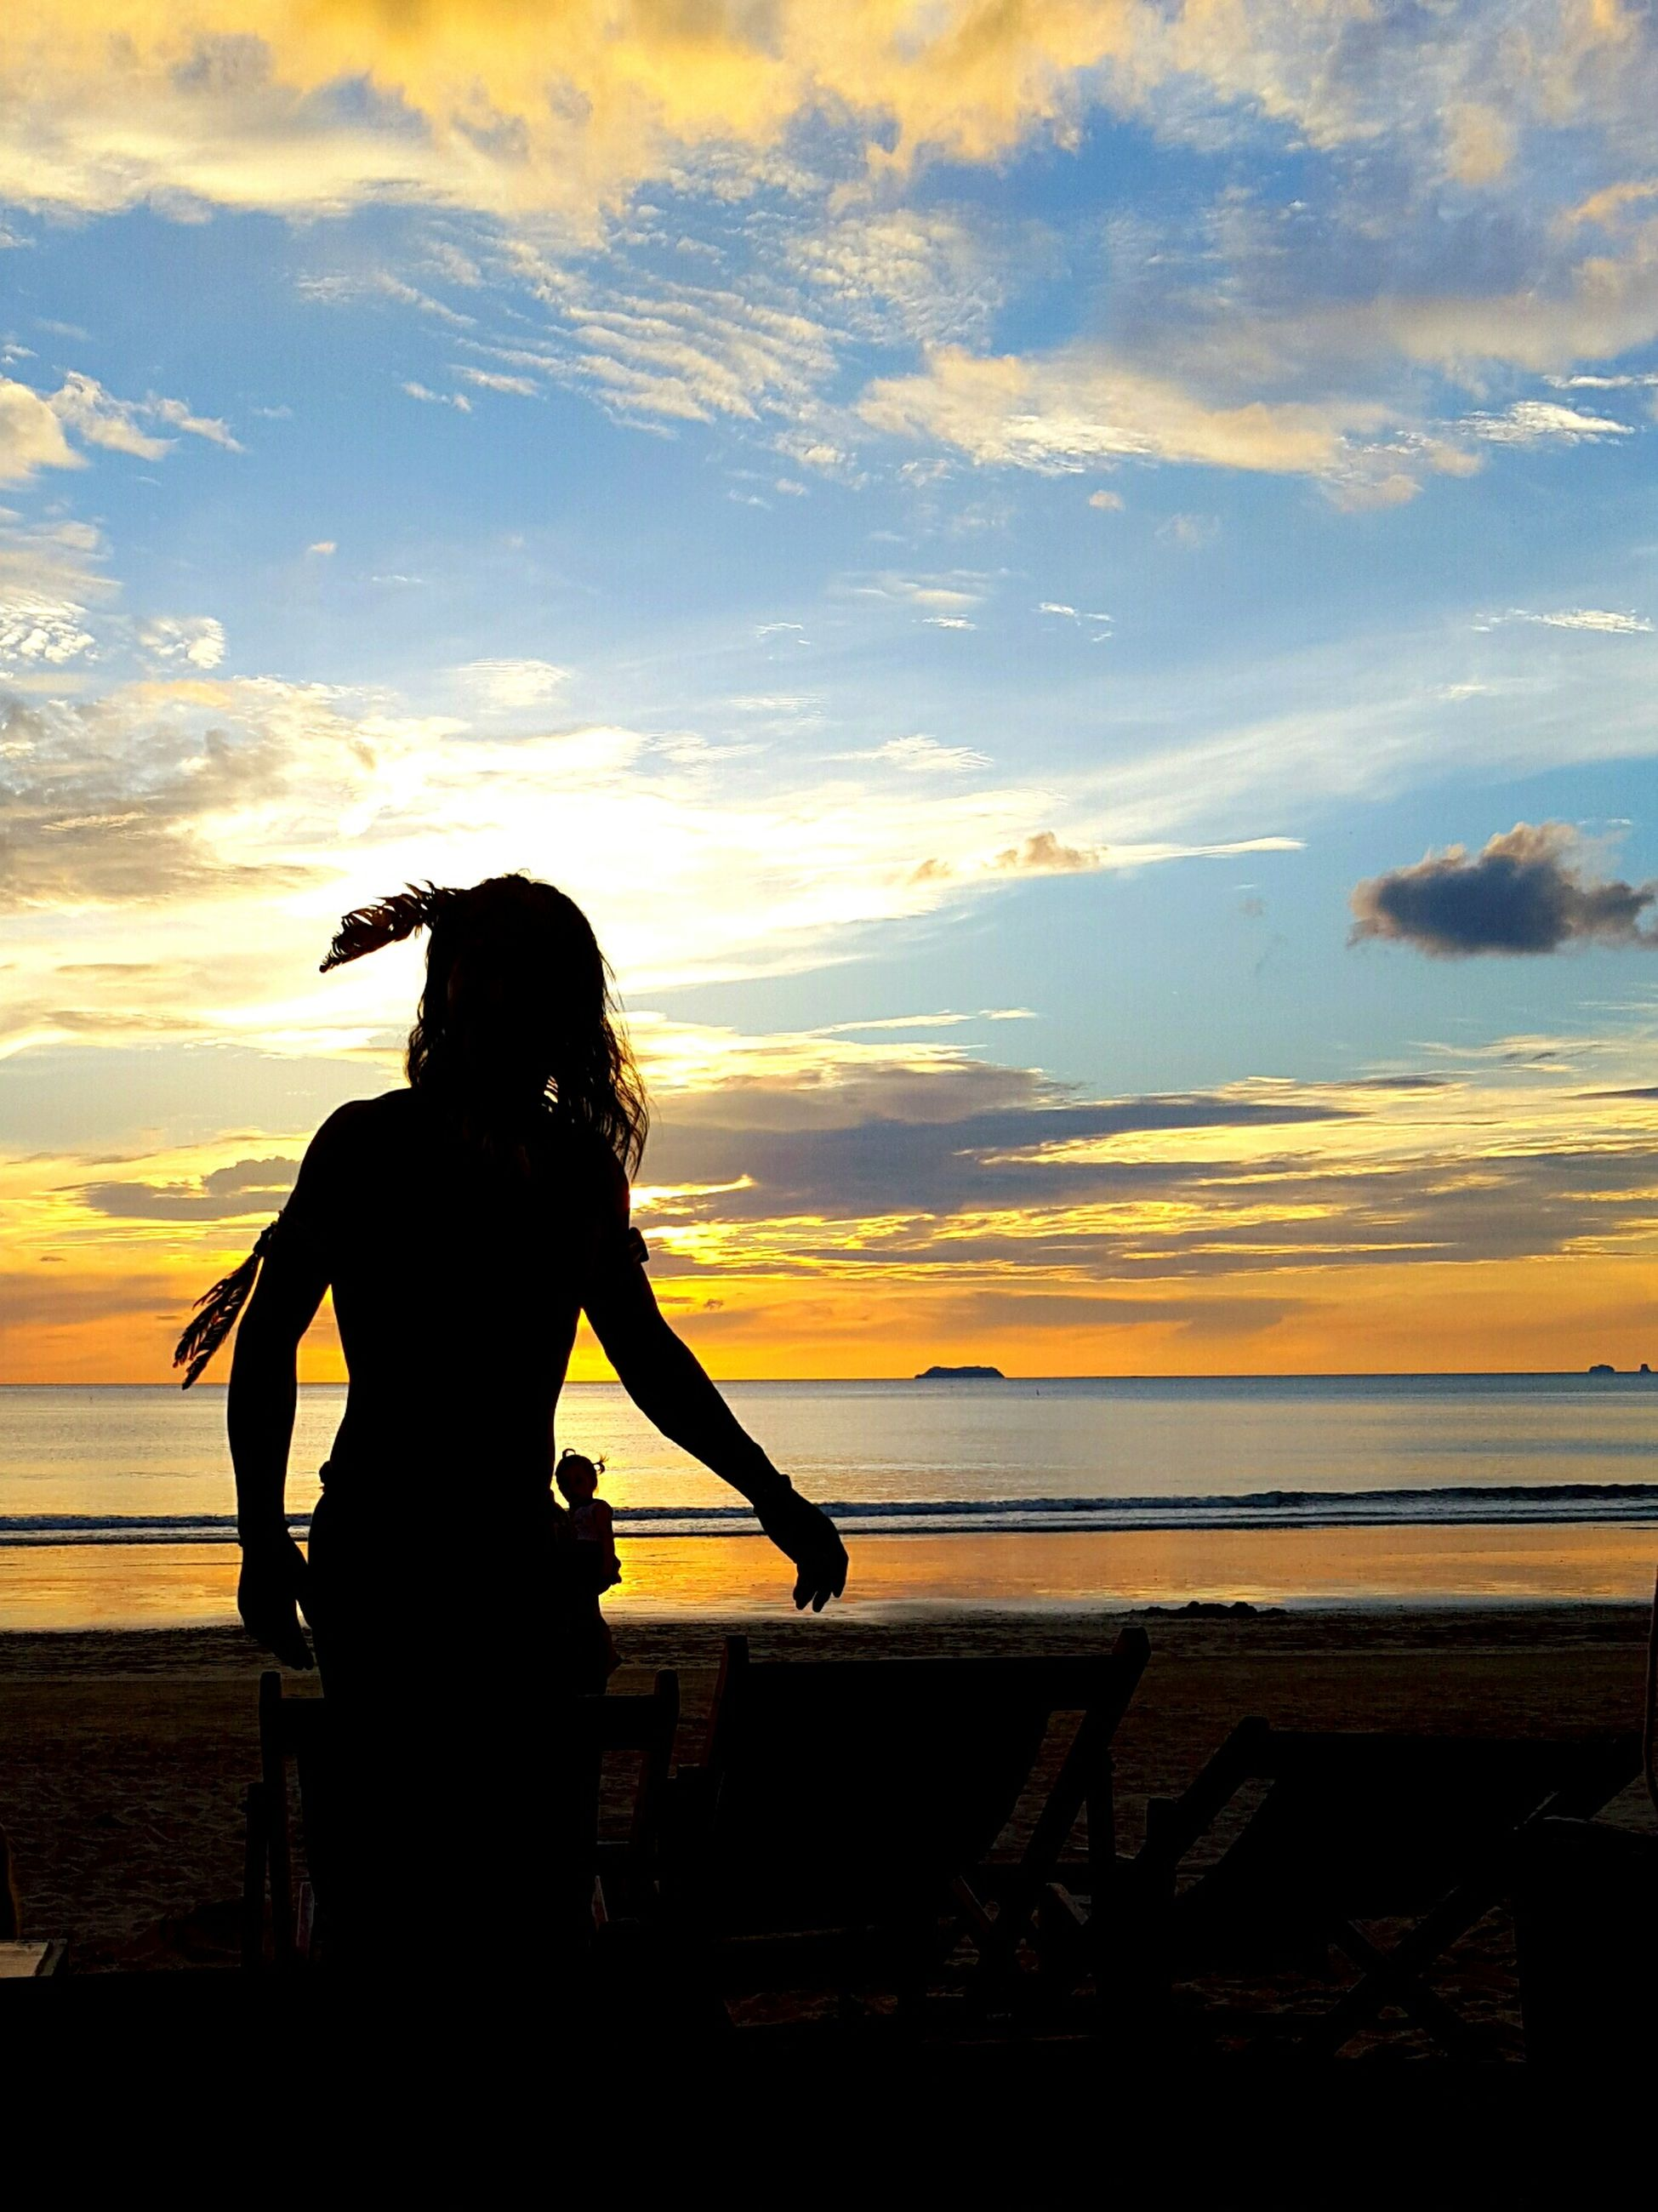 sunset, sea, horizon over water, lifestyles, sky, beach, silhouette, water, leisure activity, shore, orange color, person, beauty in nature, scenics, full length, standing, tranquility, tranquil scene